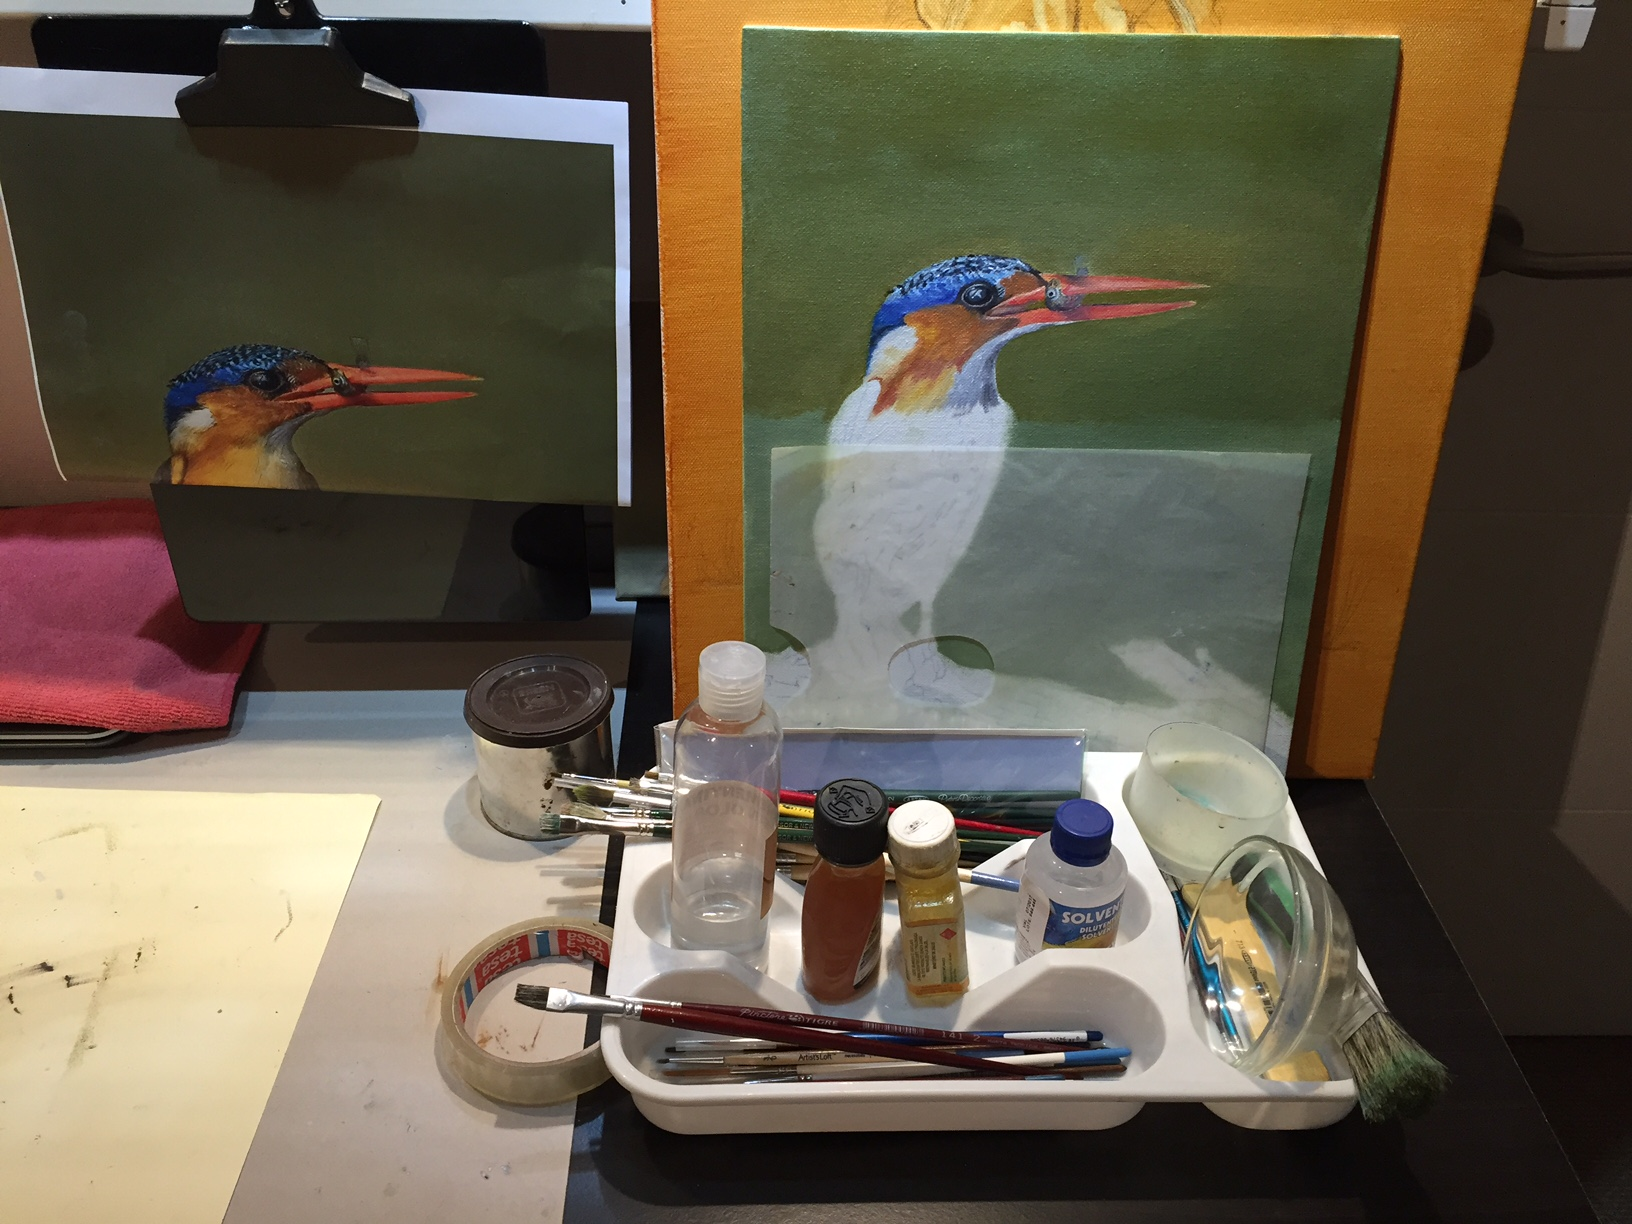 This photo shows the painting in progress against the refernce photo